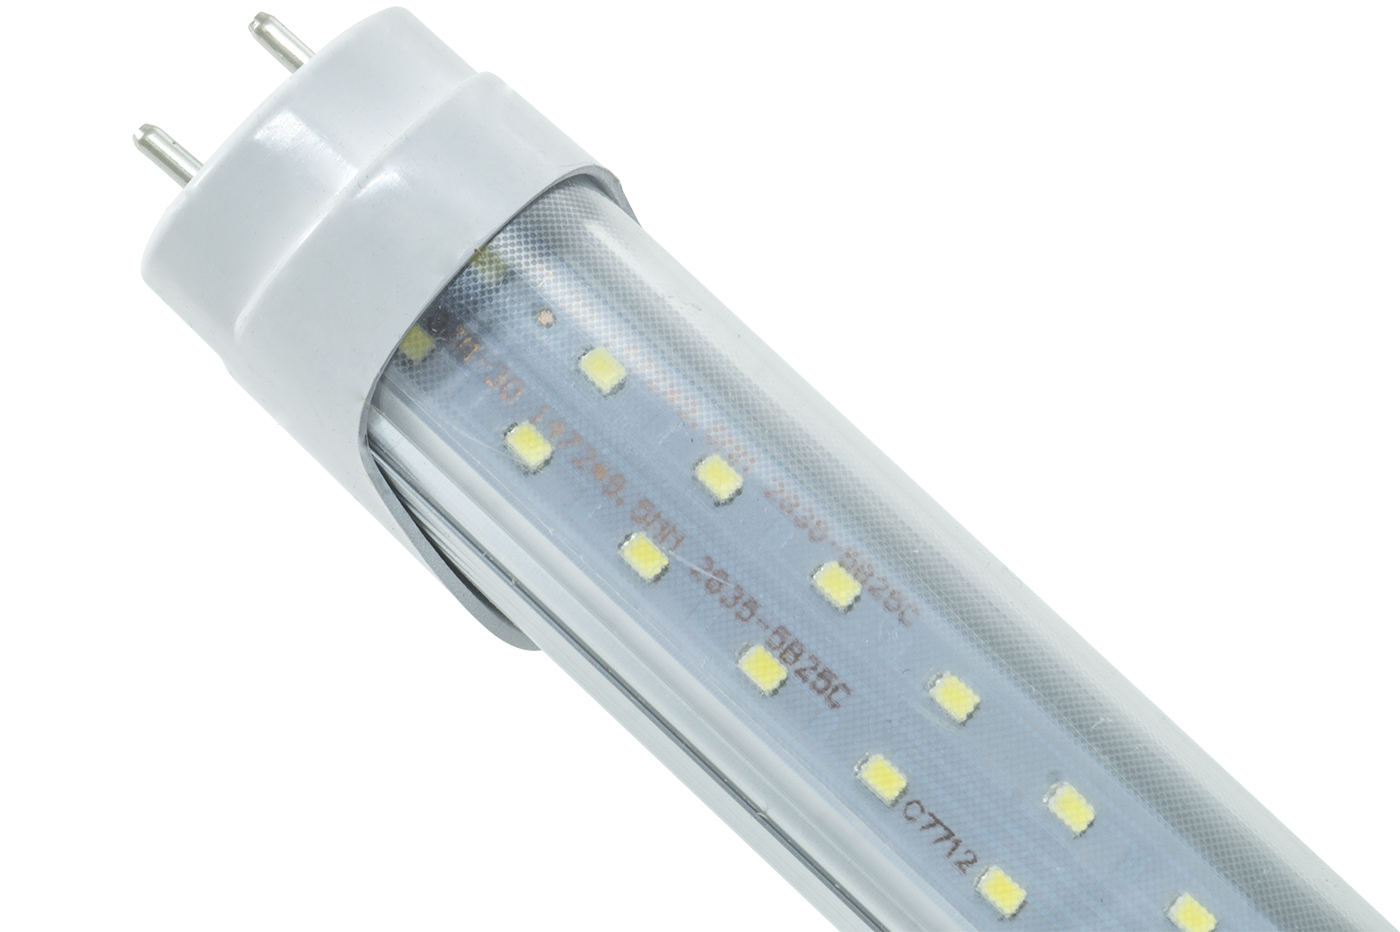 Plafoniere Per Camper 12v A Neon : Bes tubi led beselettronica neon luce naturale w